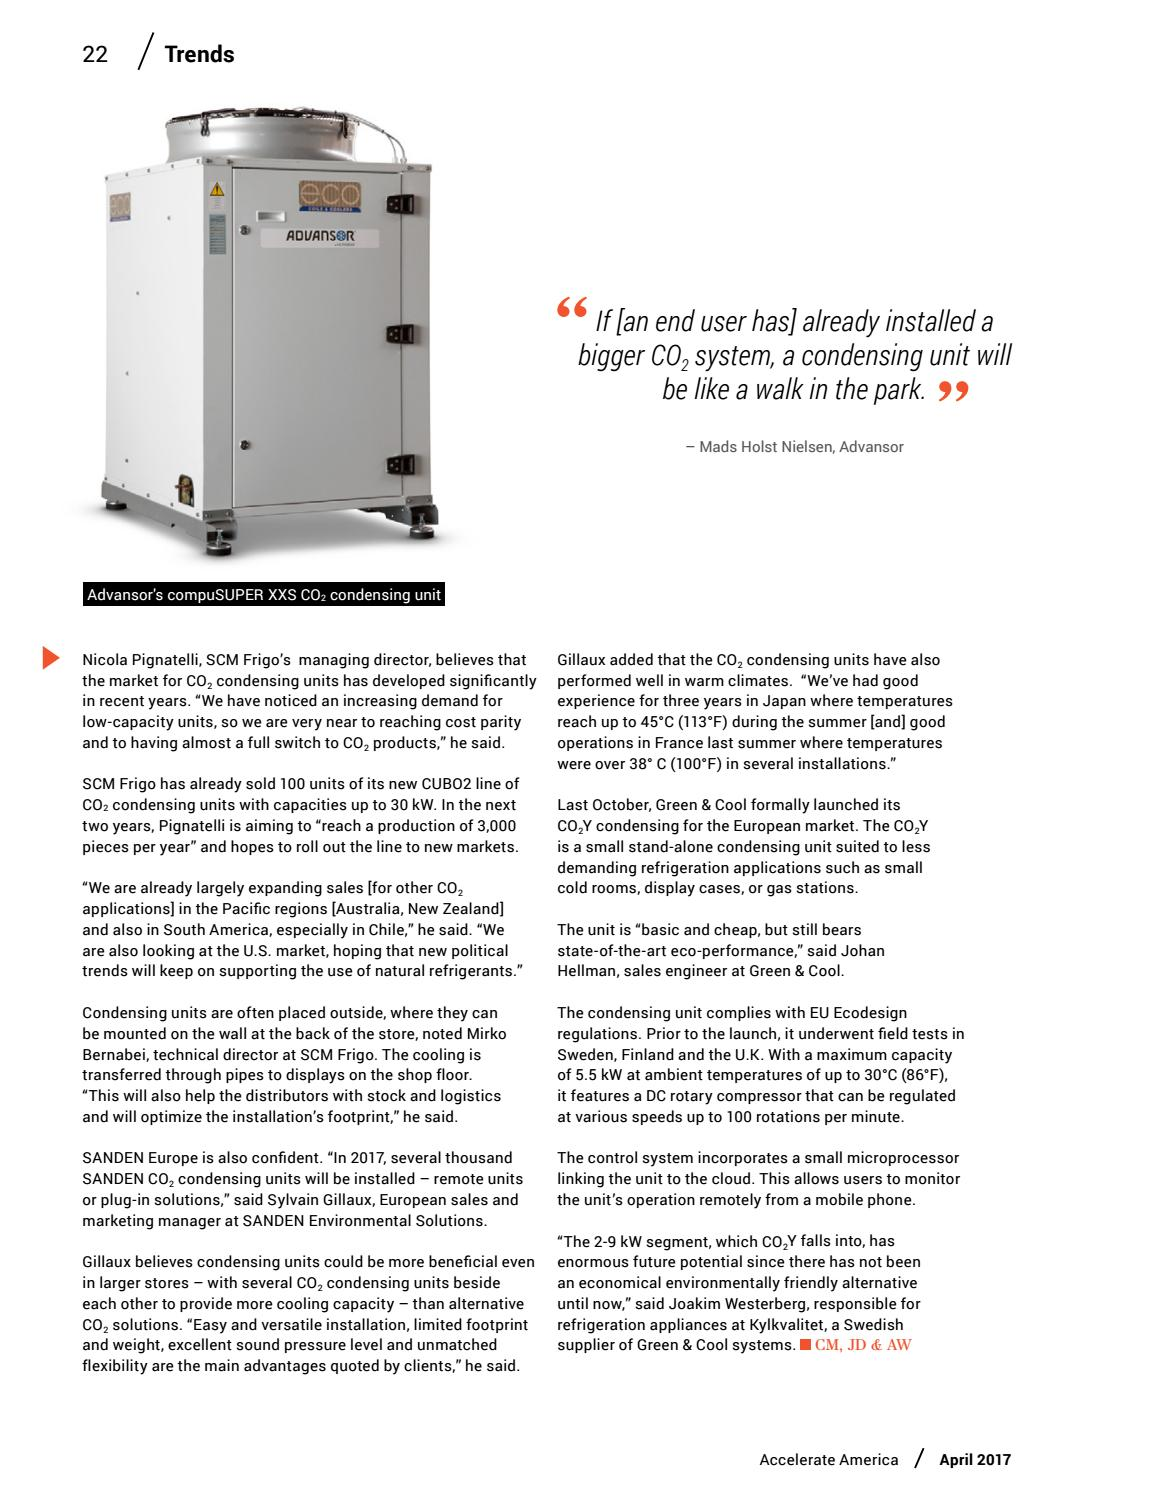 Accelerate America 24 April 2017 By Shecco Issuu Installation Condensing Unit And Refrigeration System